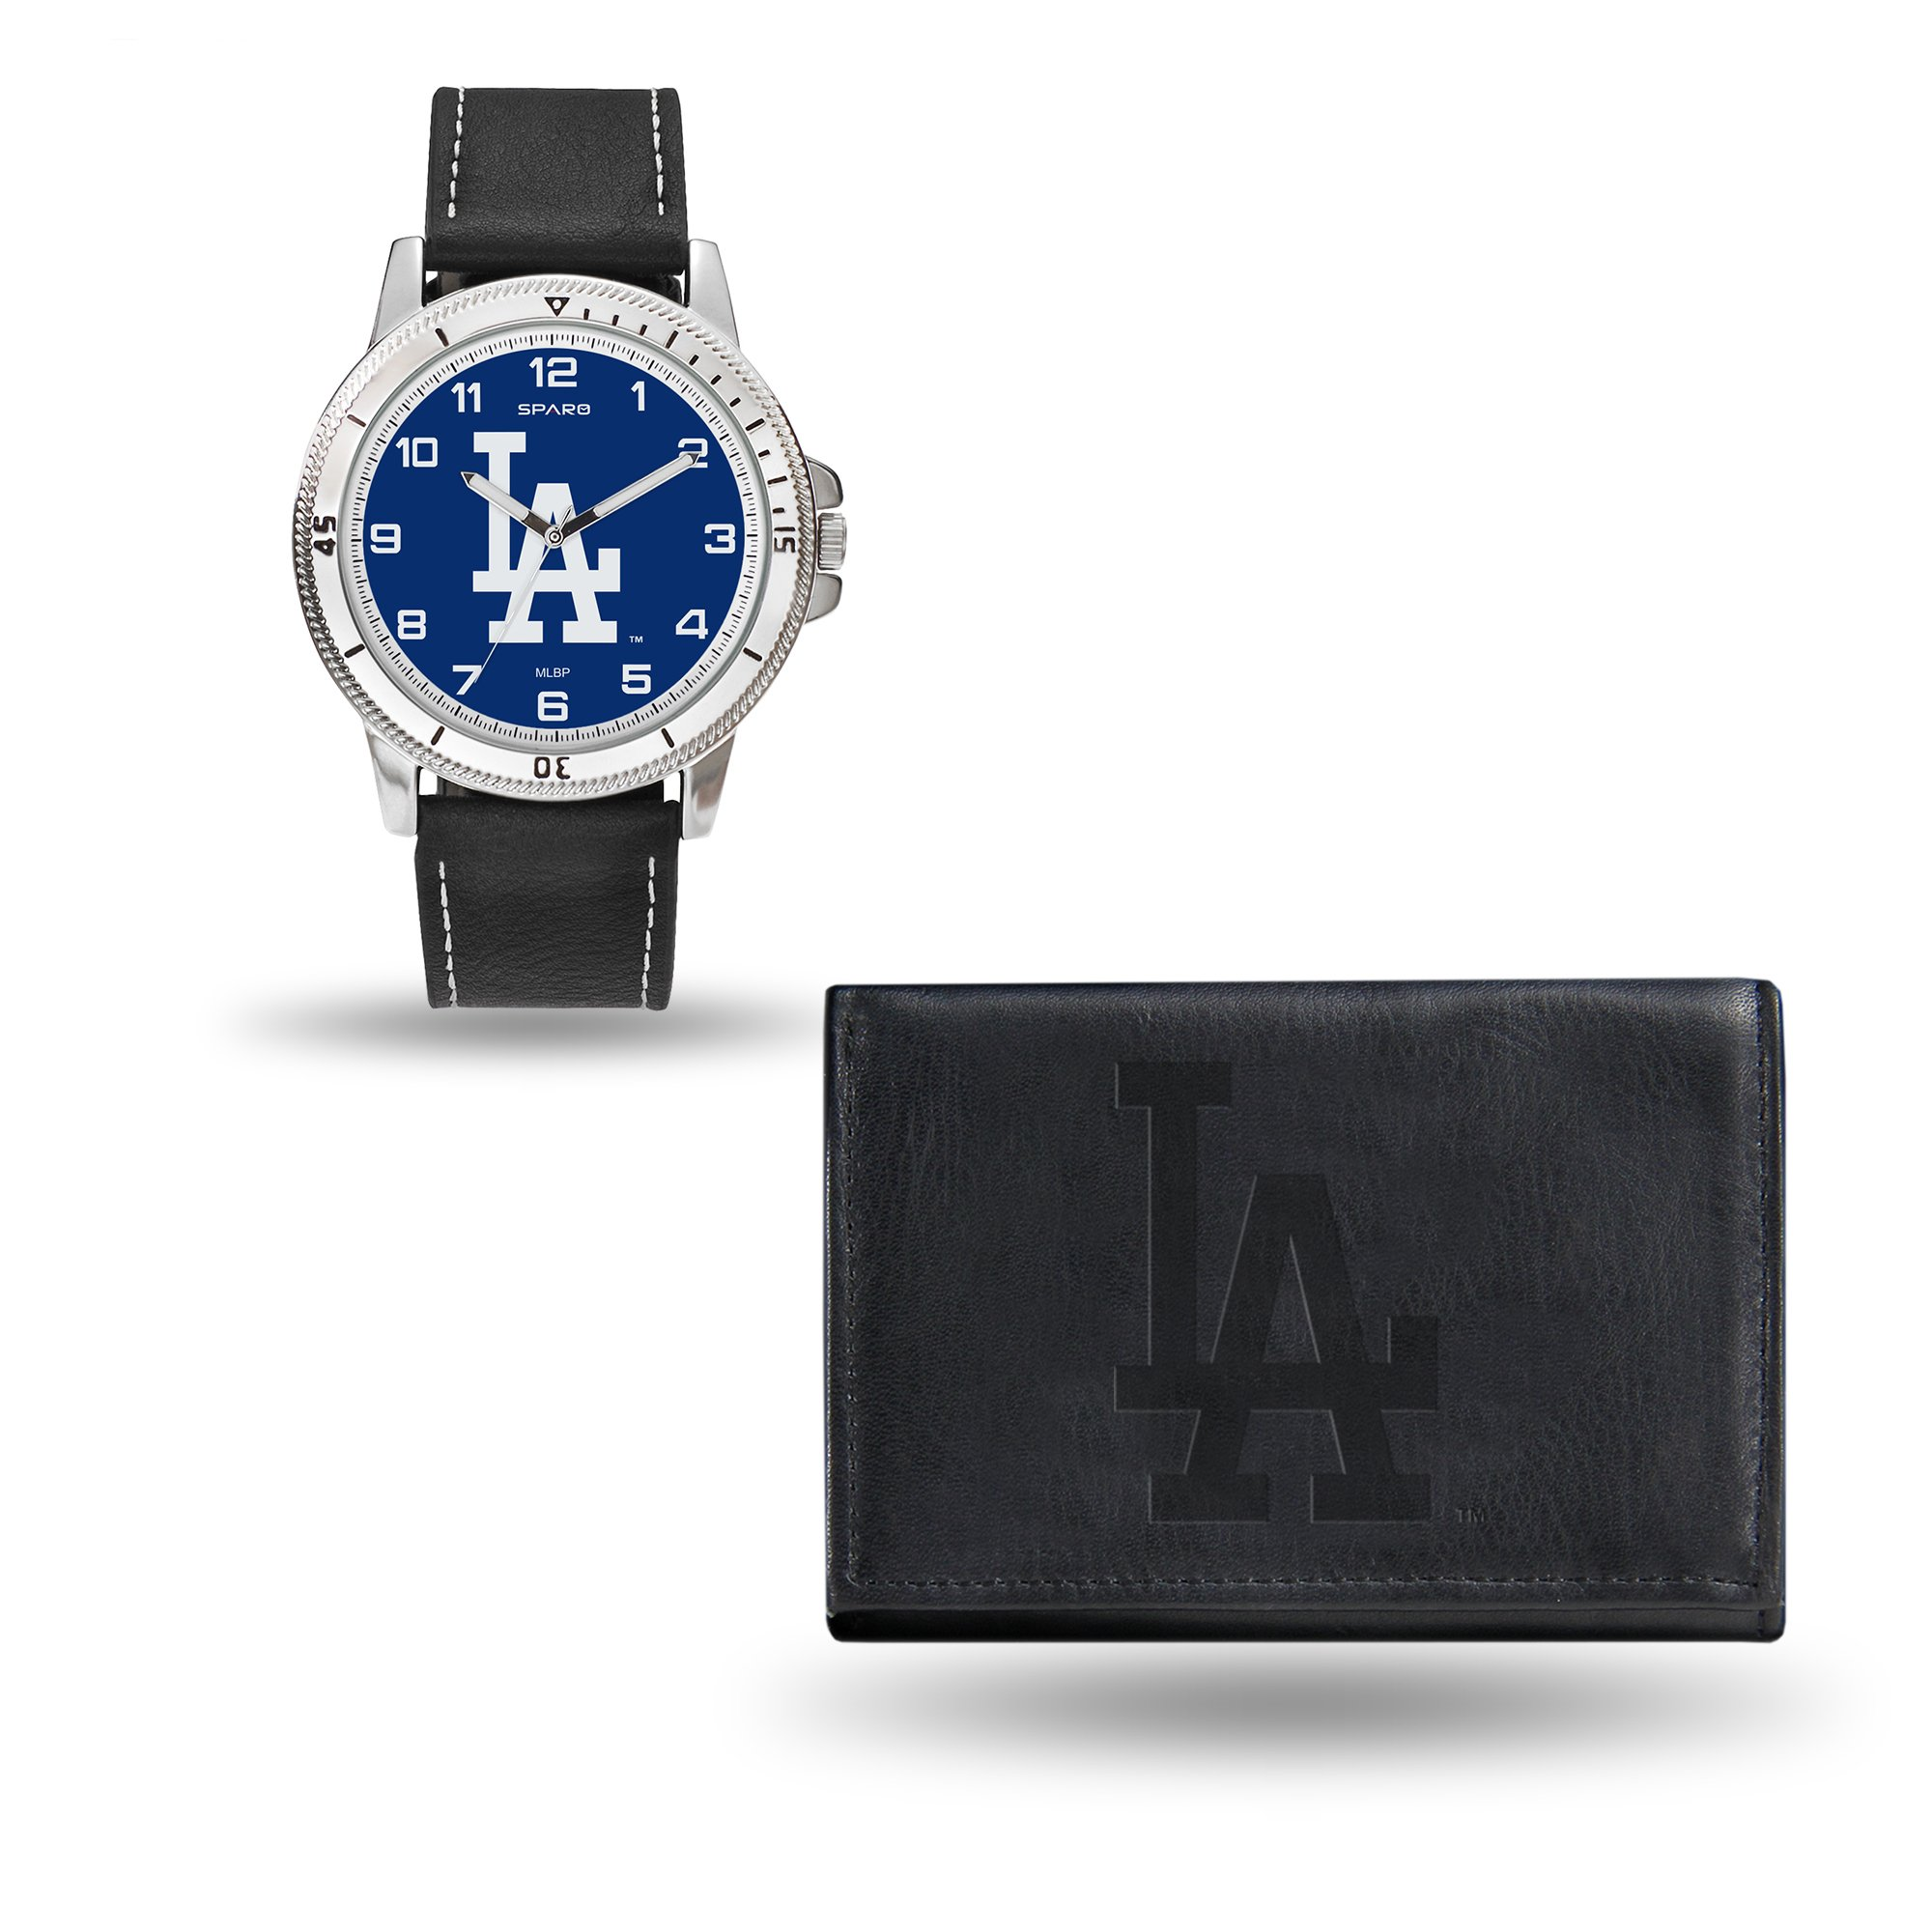 Rico Industries MLB Los Angeles Dodgers Men's Watch and Wallet Set, Black, 7.5 x 4.25 x 2.75-Inch